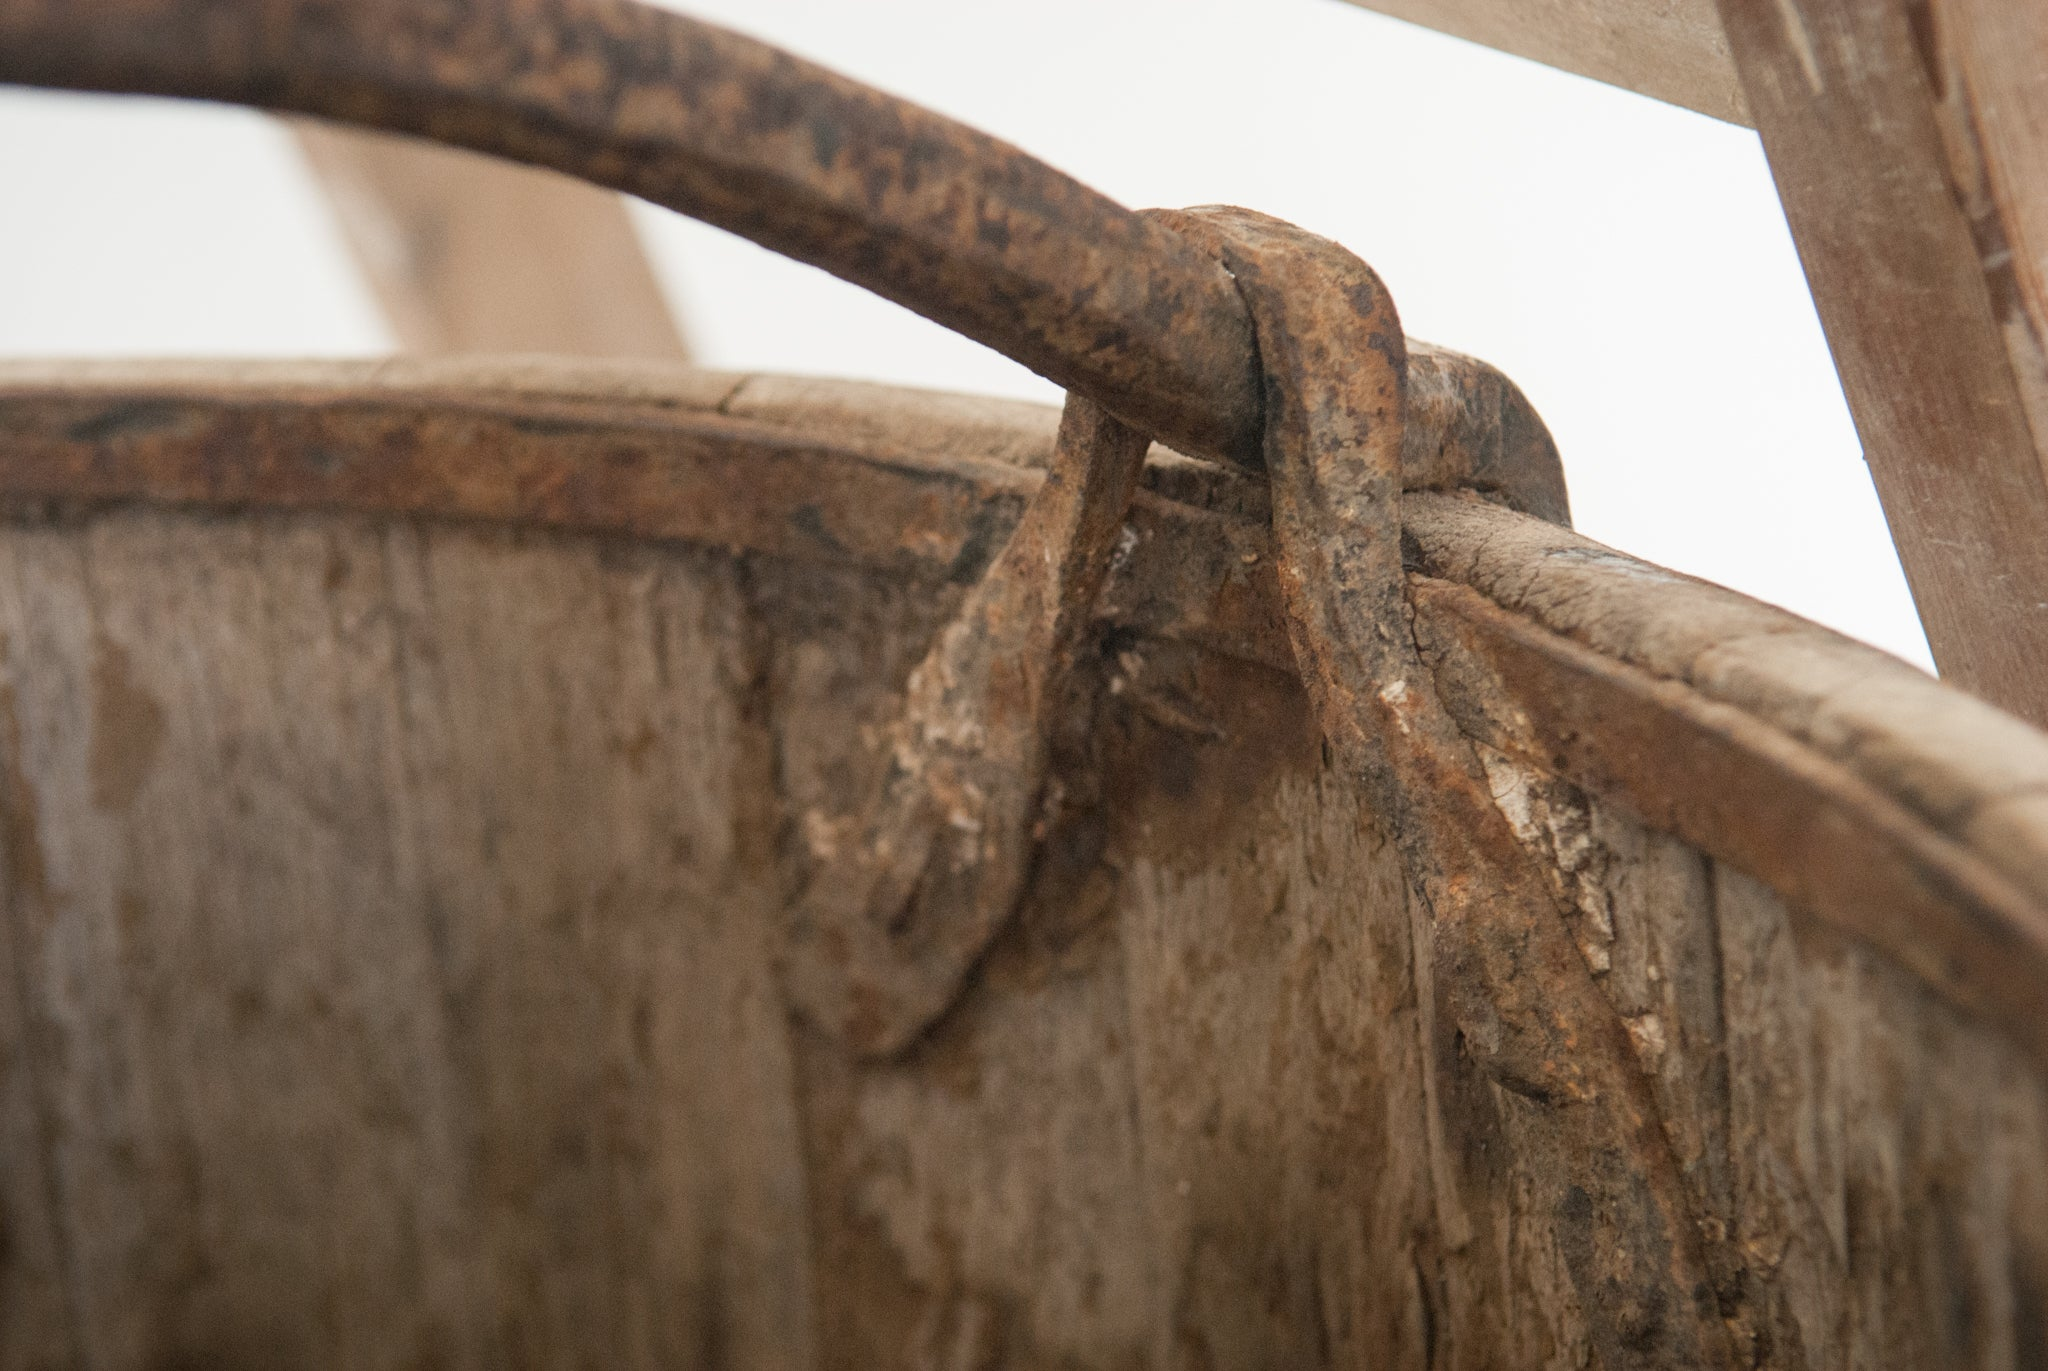 Vintage Well Bucket_Detail 4